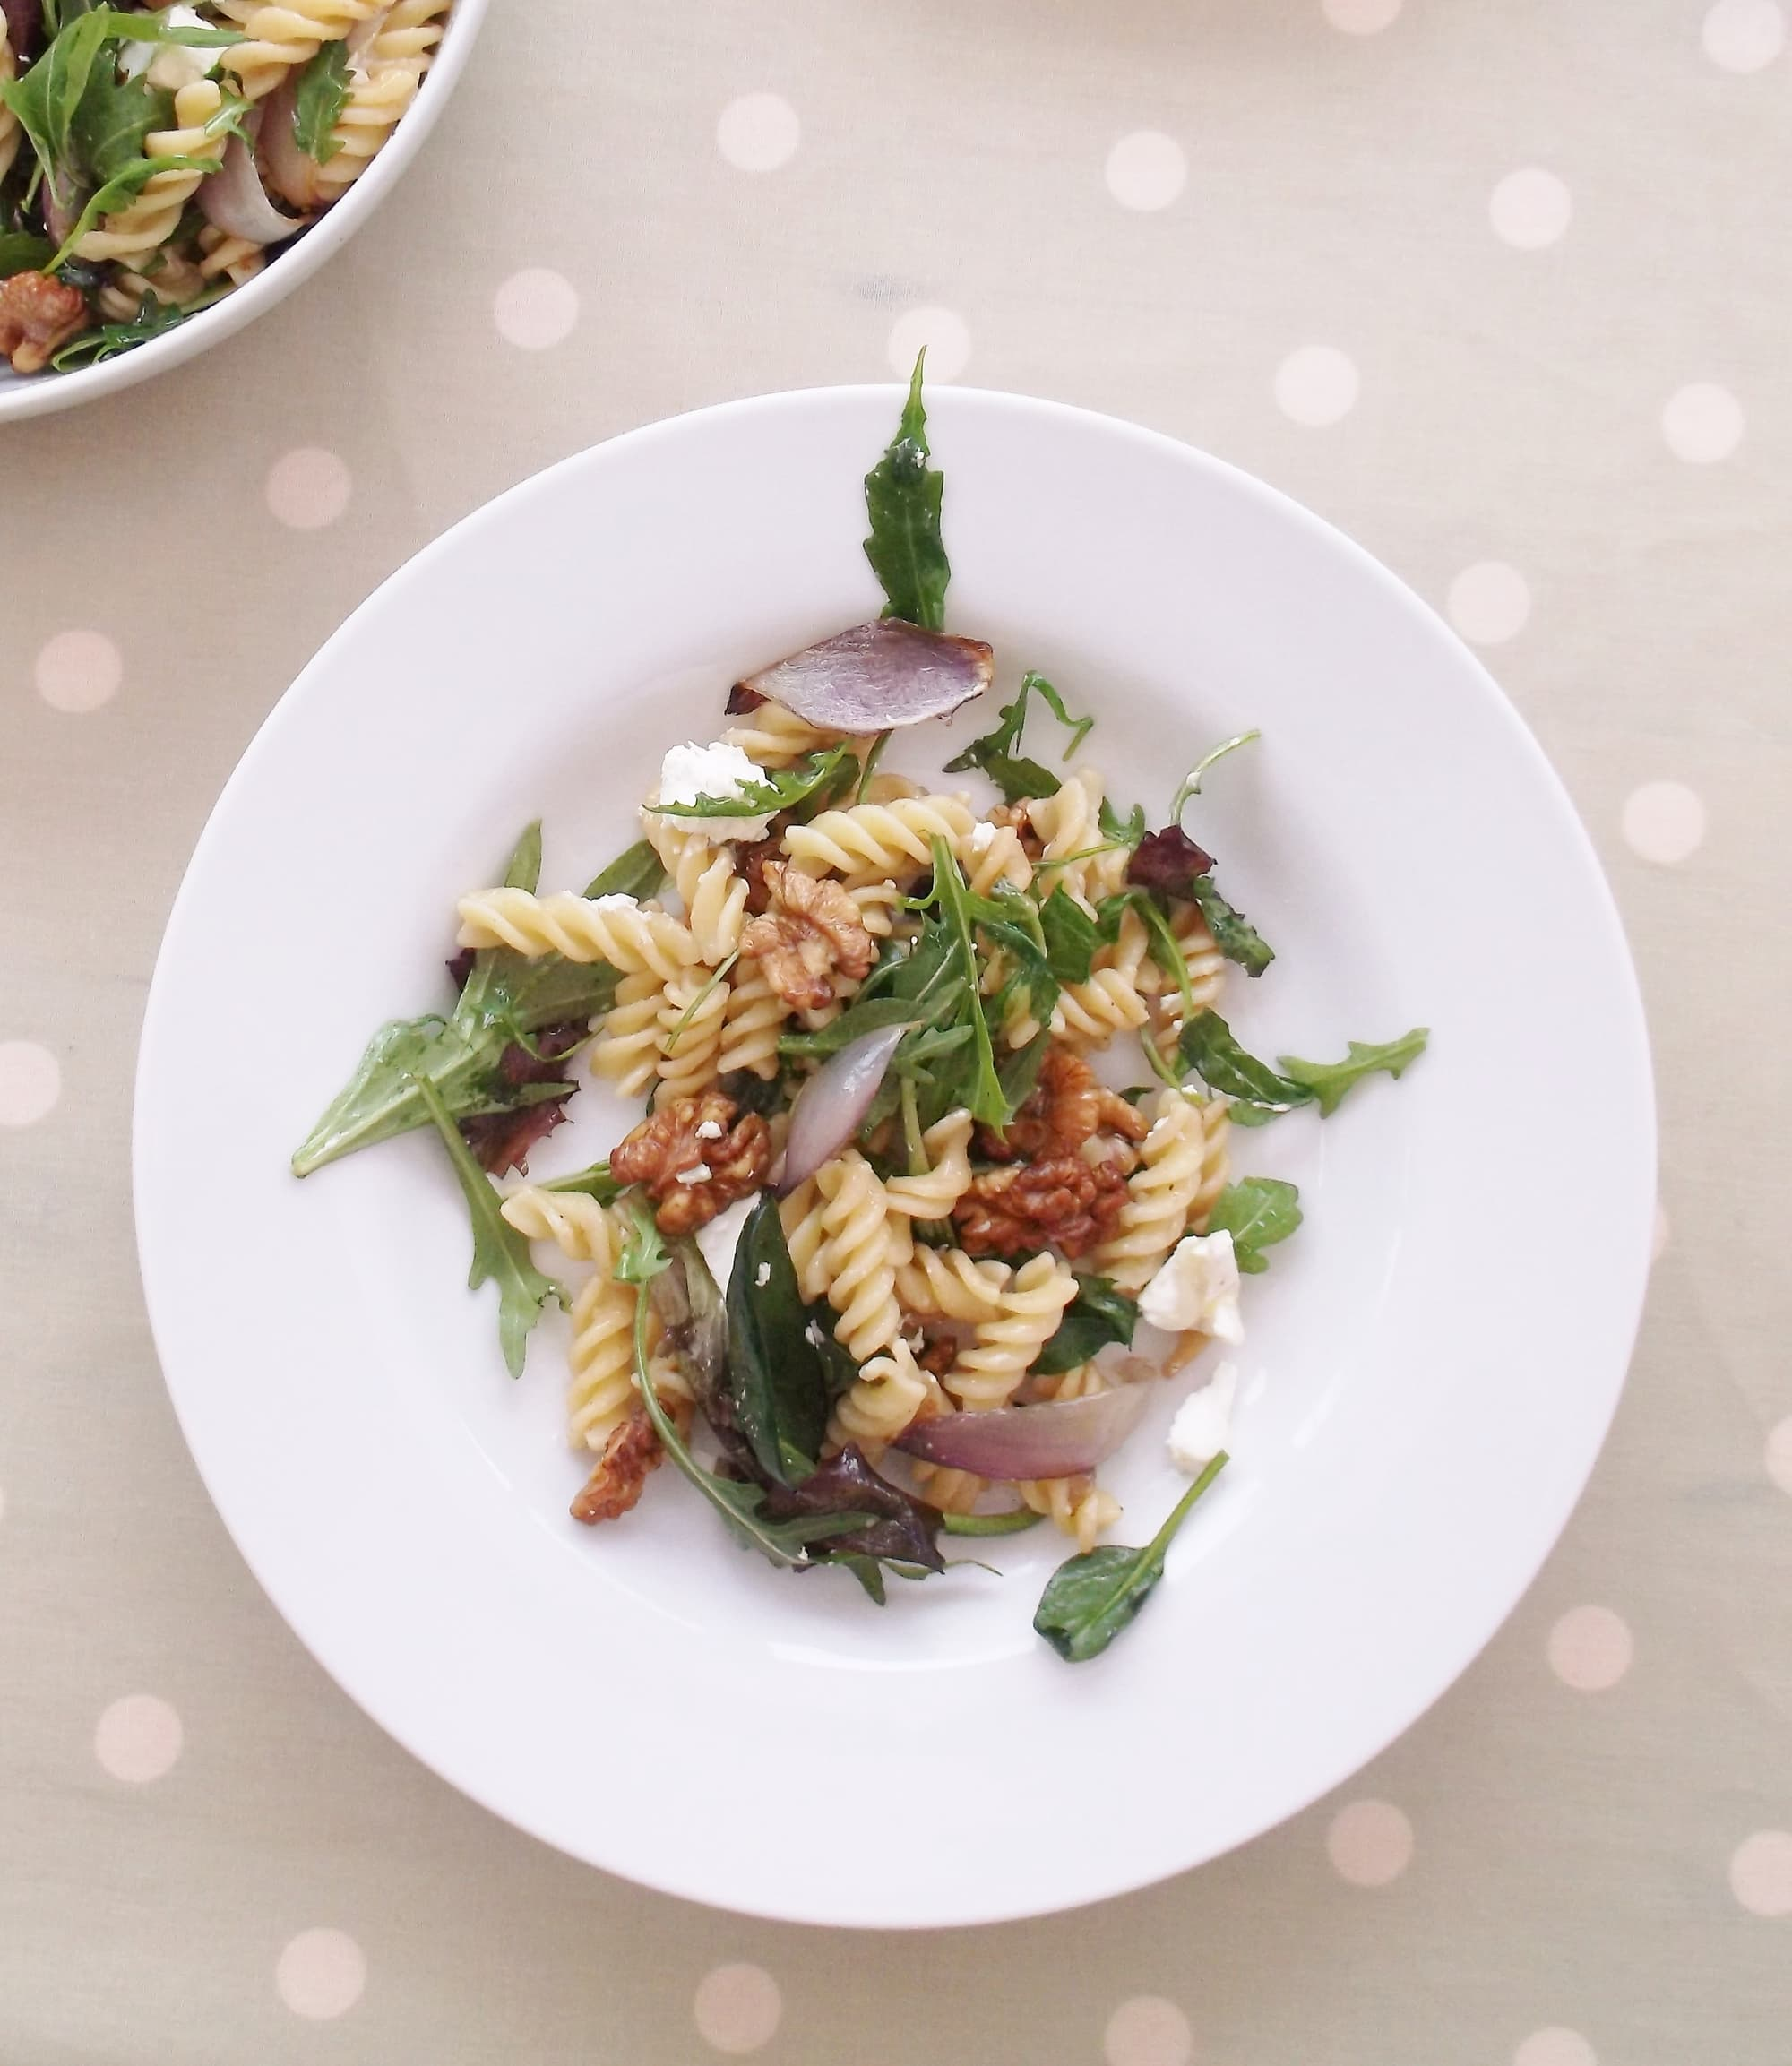 Warm Goat's Cheese, Red Onion and Walnut Pasta Salad (Veggie)